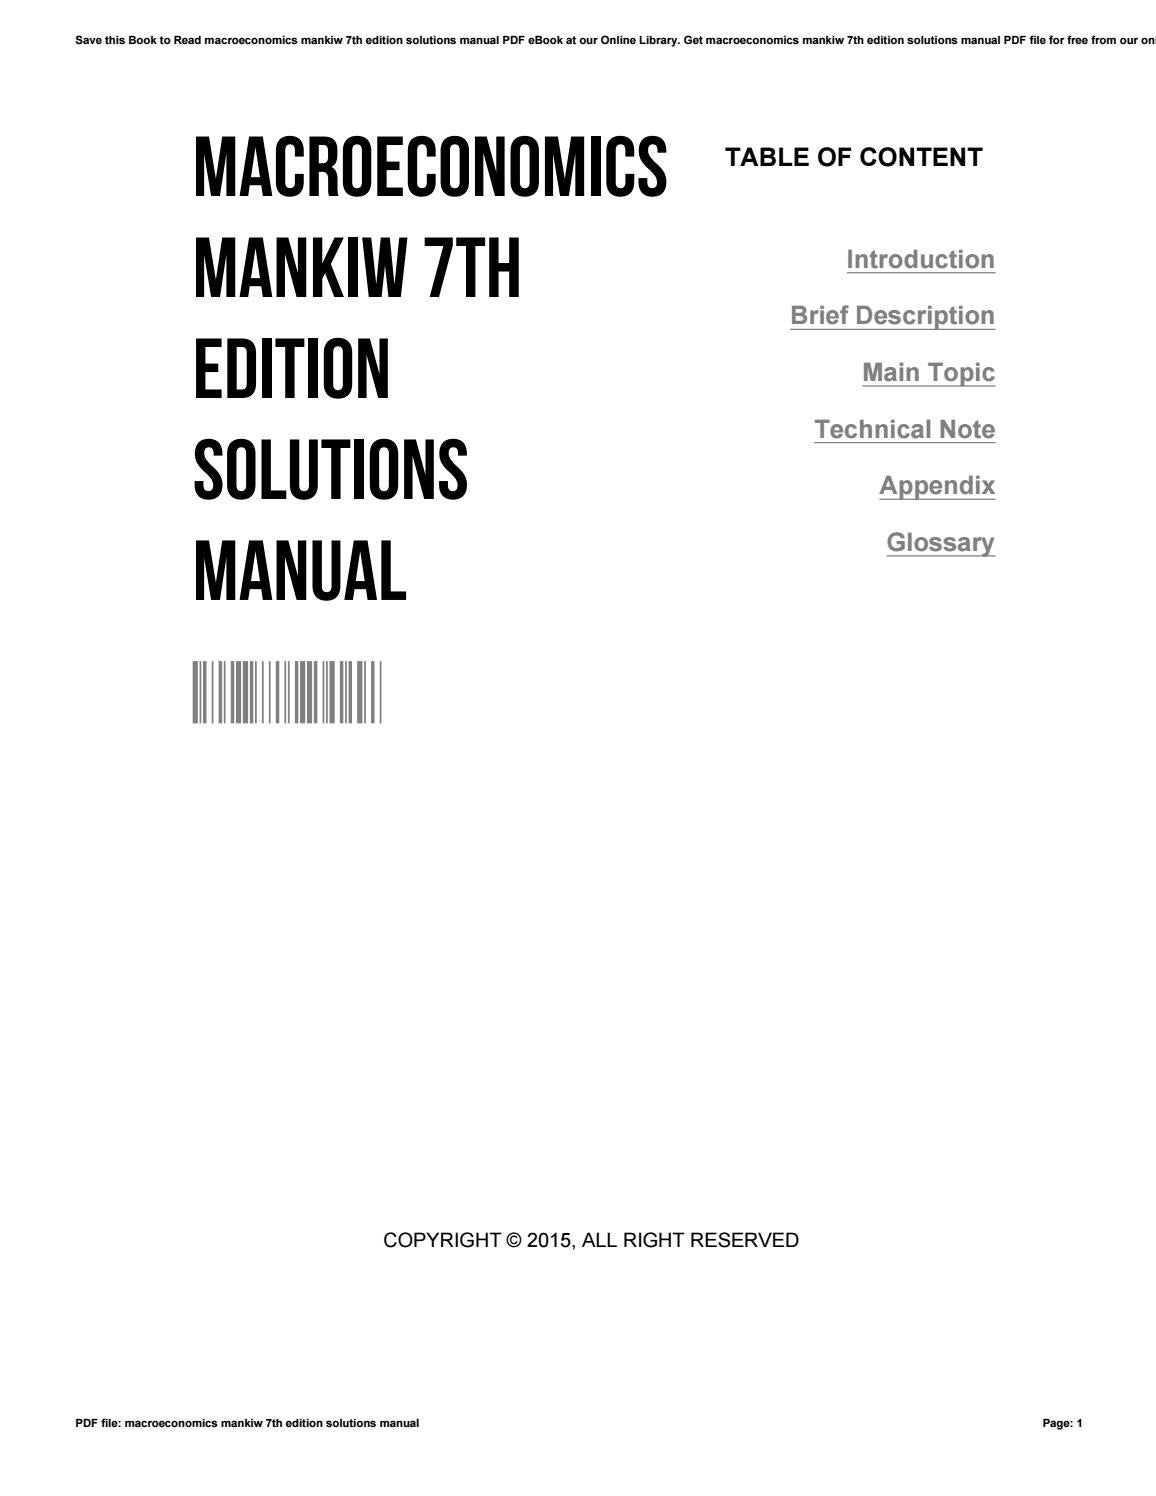 Macroeconomics mankiw 7th edition solutions manual by